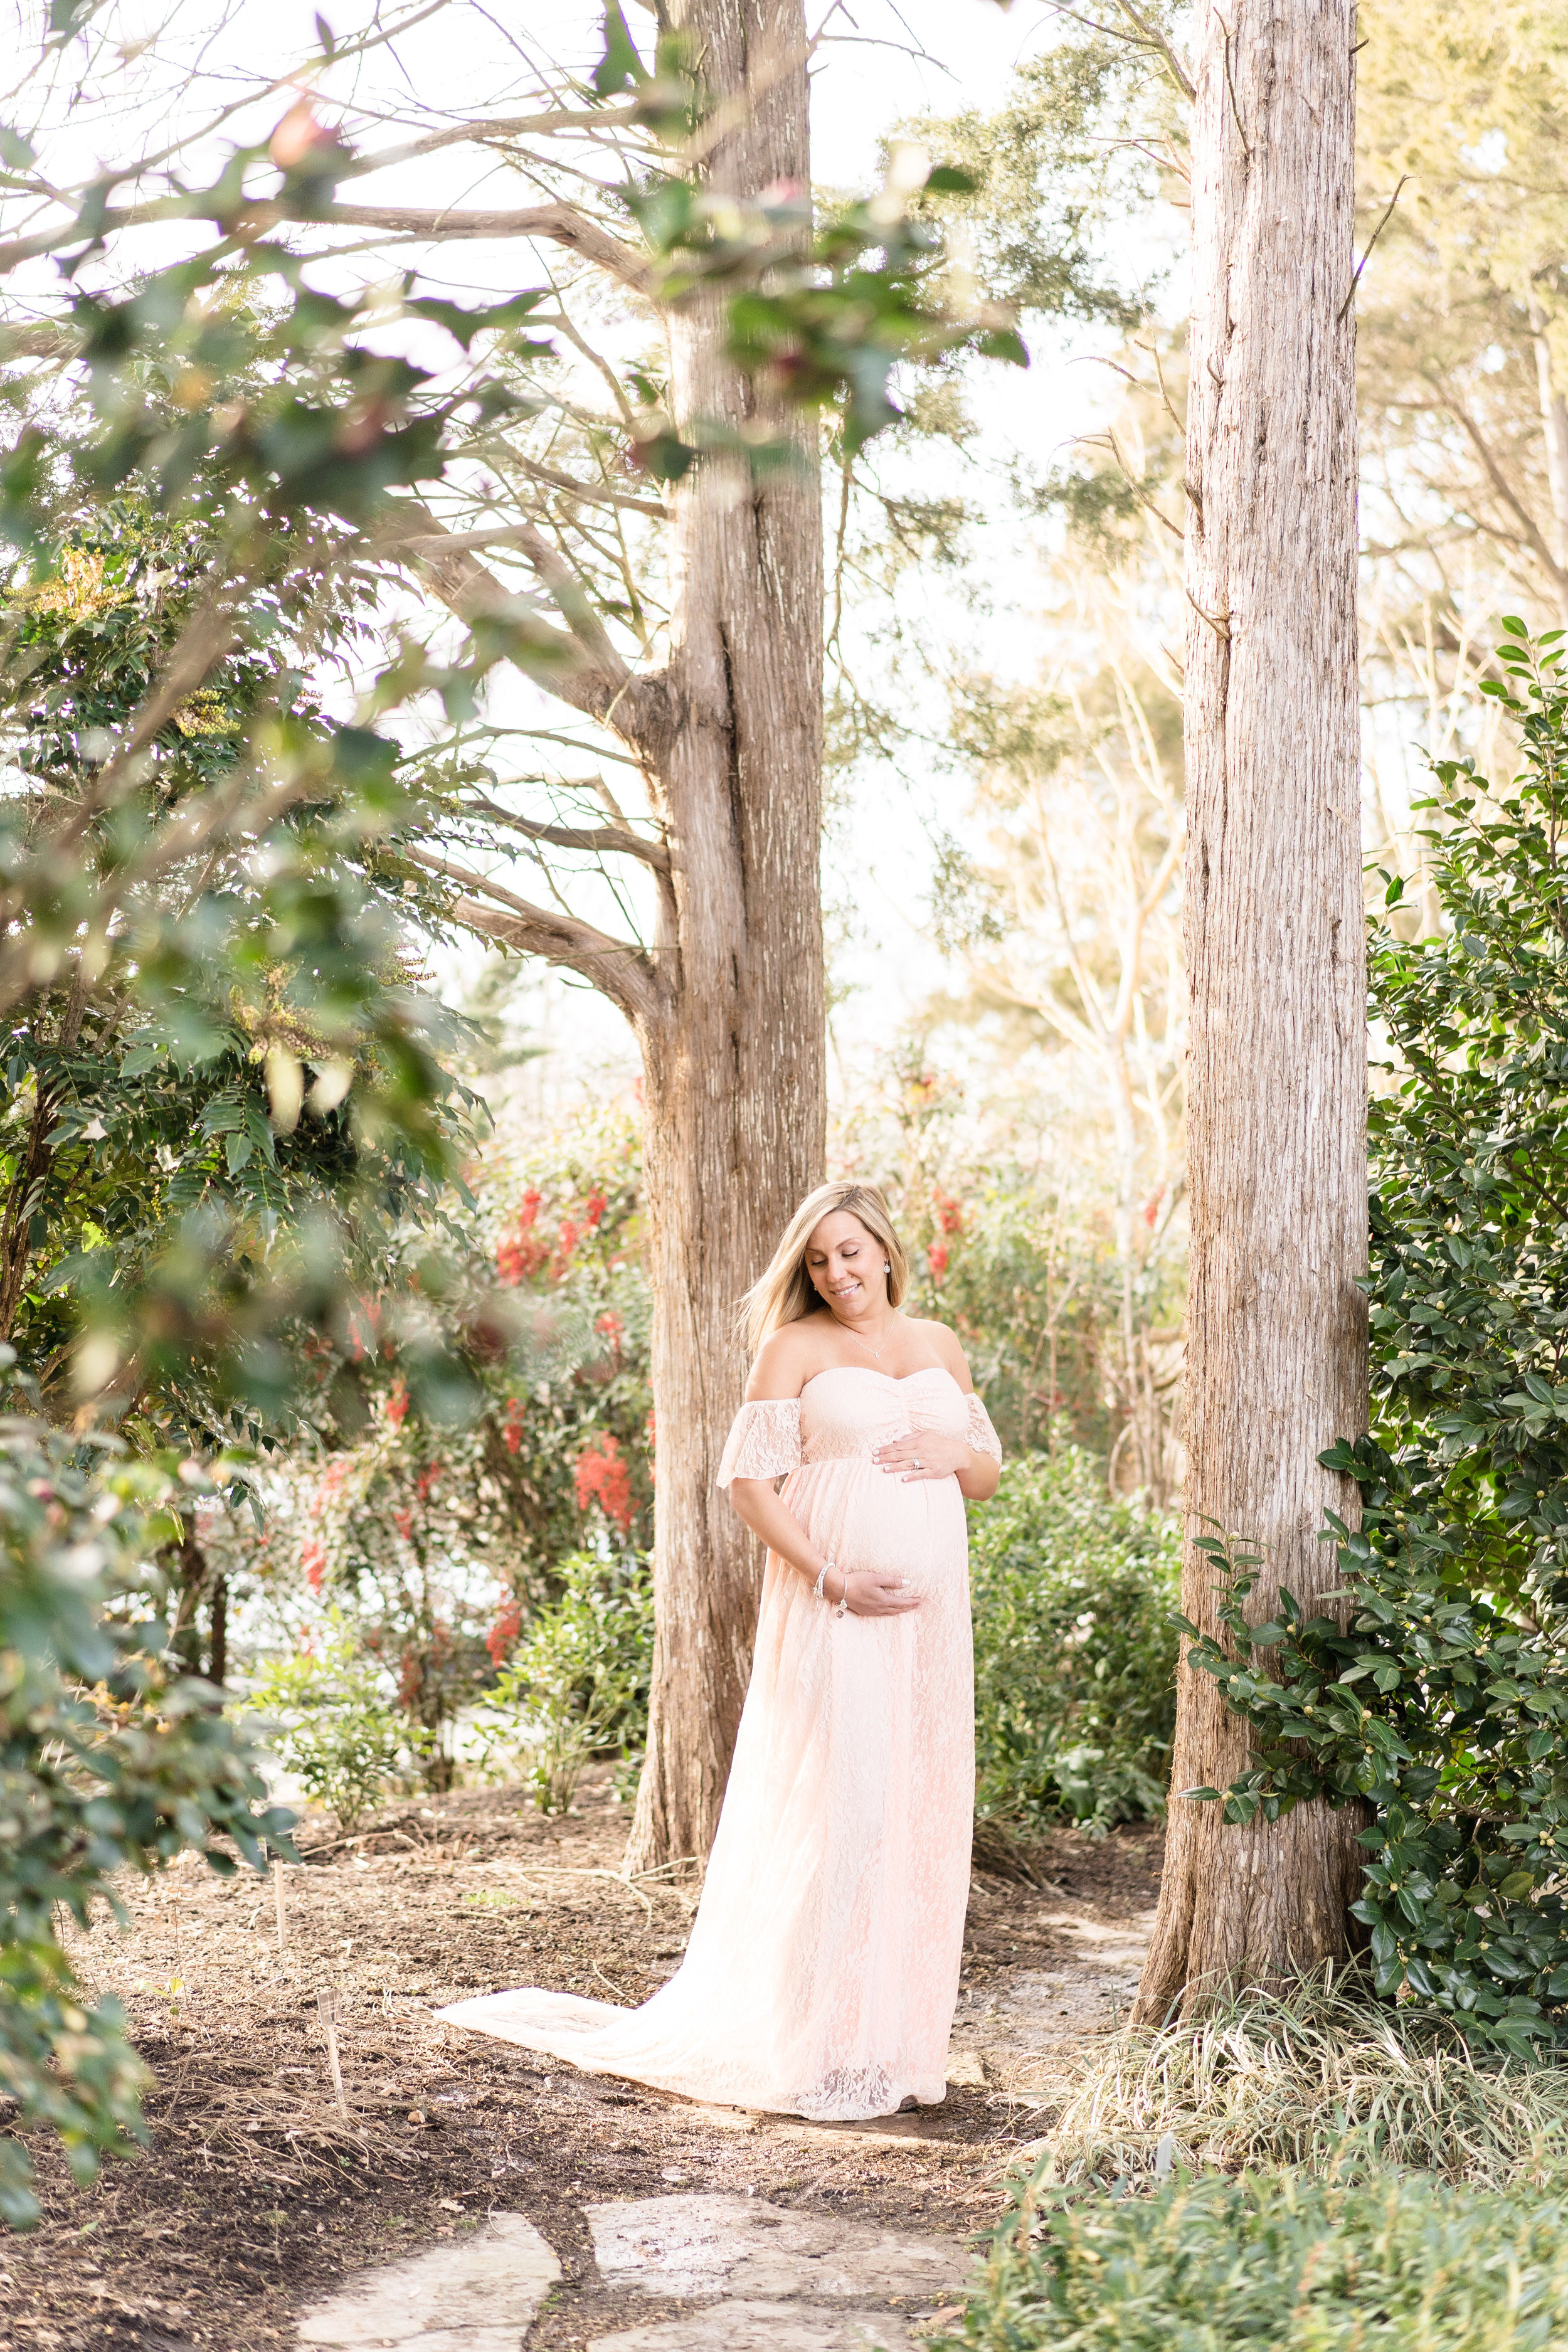 Top northern virginia maternity photographer near me captures stunning Mom pregnant with her baby girl in gorgeous pale pink maternity gown in stunning greenery.